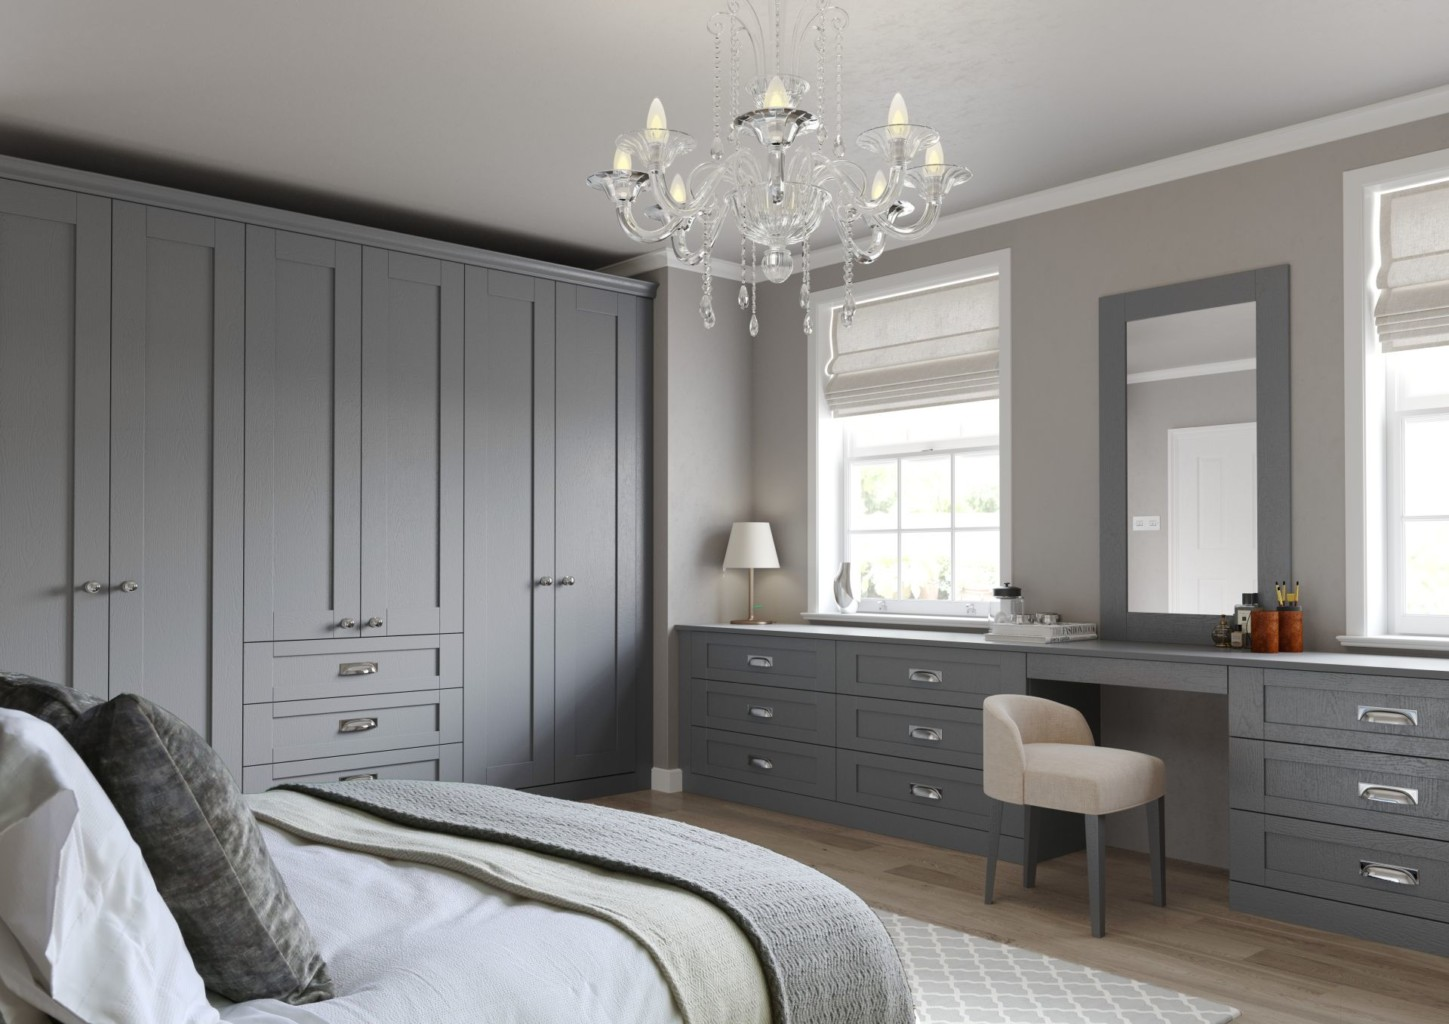 Grey Painted Rooms Bedrooms Dublin We Create Our Tomorrows By What We Dream